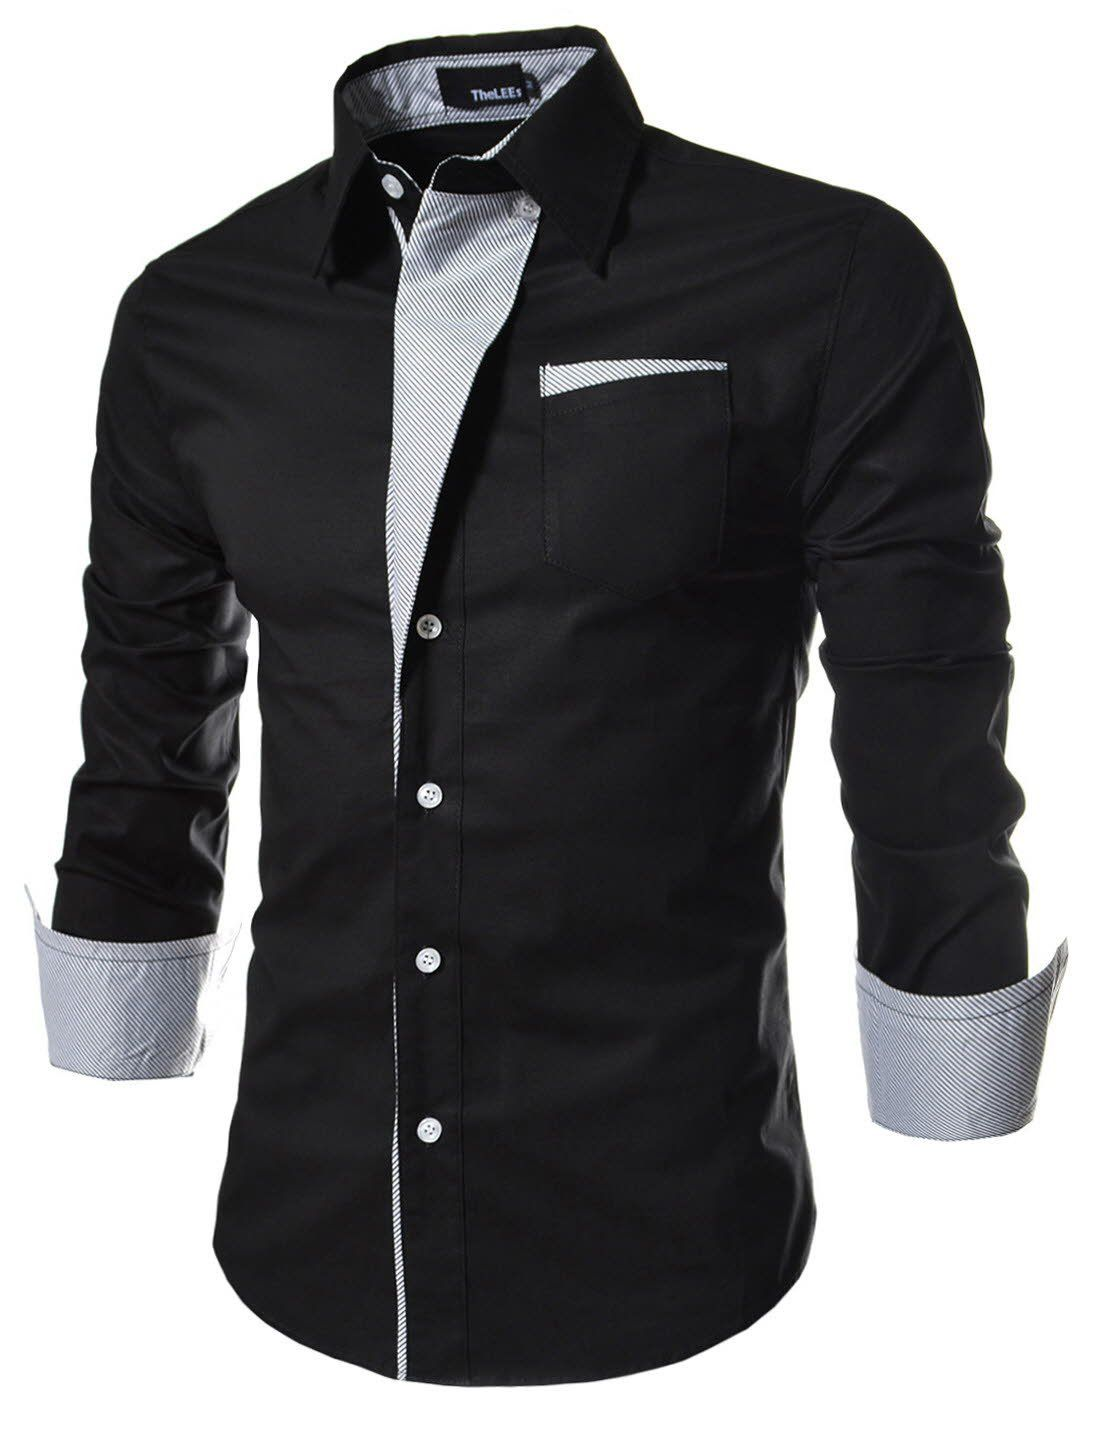 (N320) TheLees Mens Casual Long Sleeve Stripe Patched Fitted Dress Shirts Black Chest 38(Tag size L)